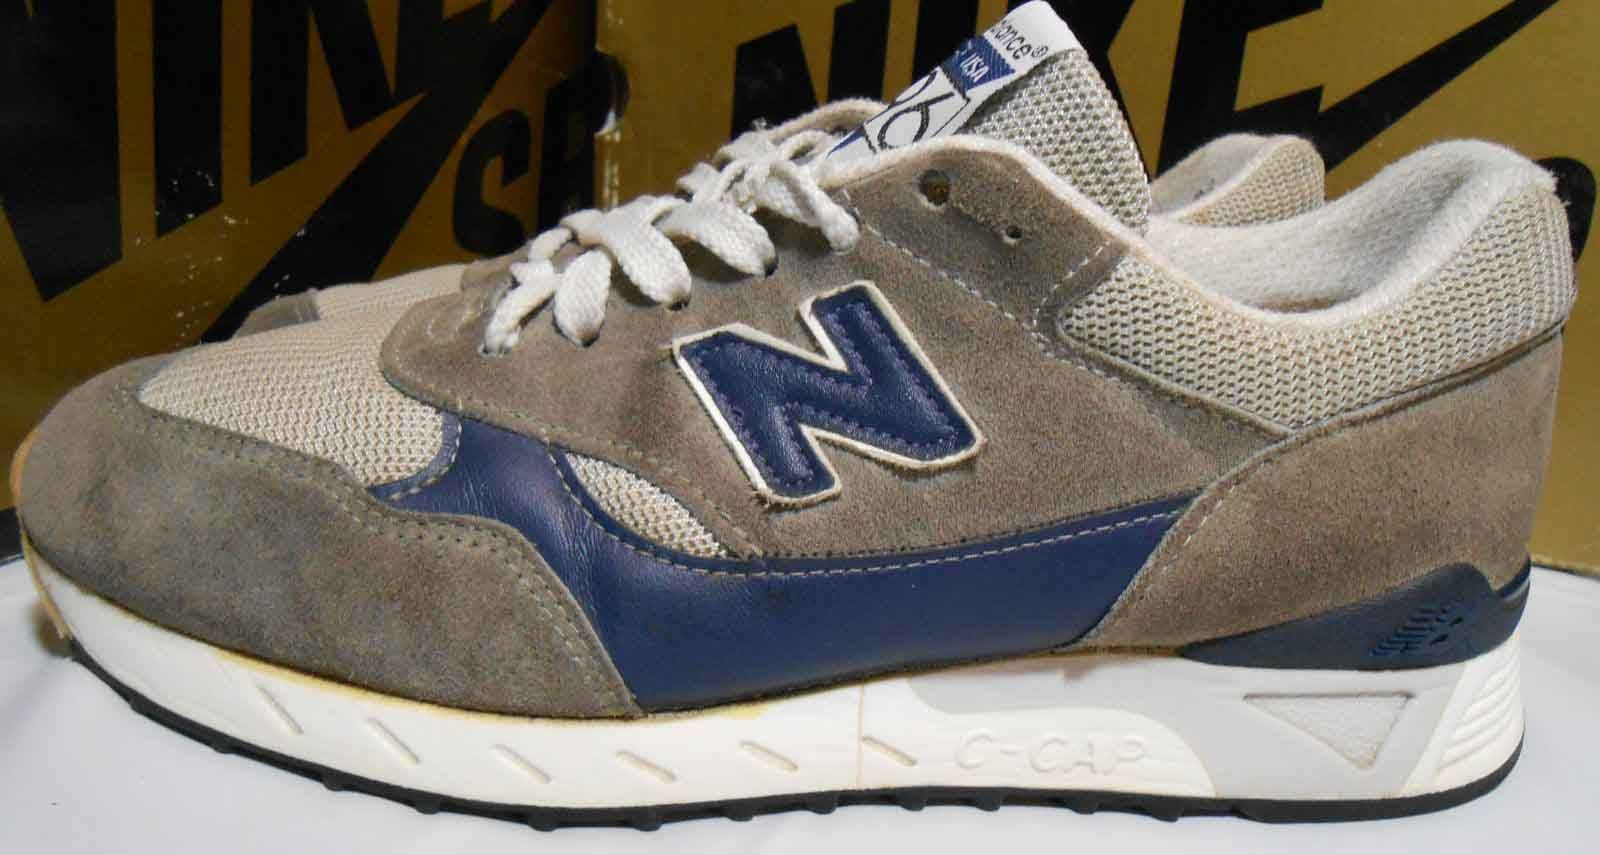 taille 40 d4bf9 2b5a8 New Balance 496 running shoe | Tenis | Sneakers, New balance ...